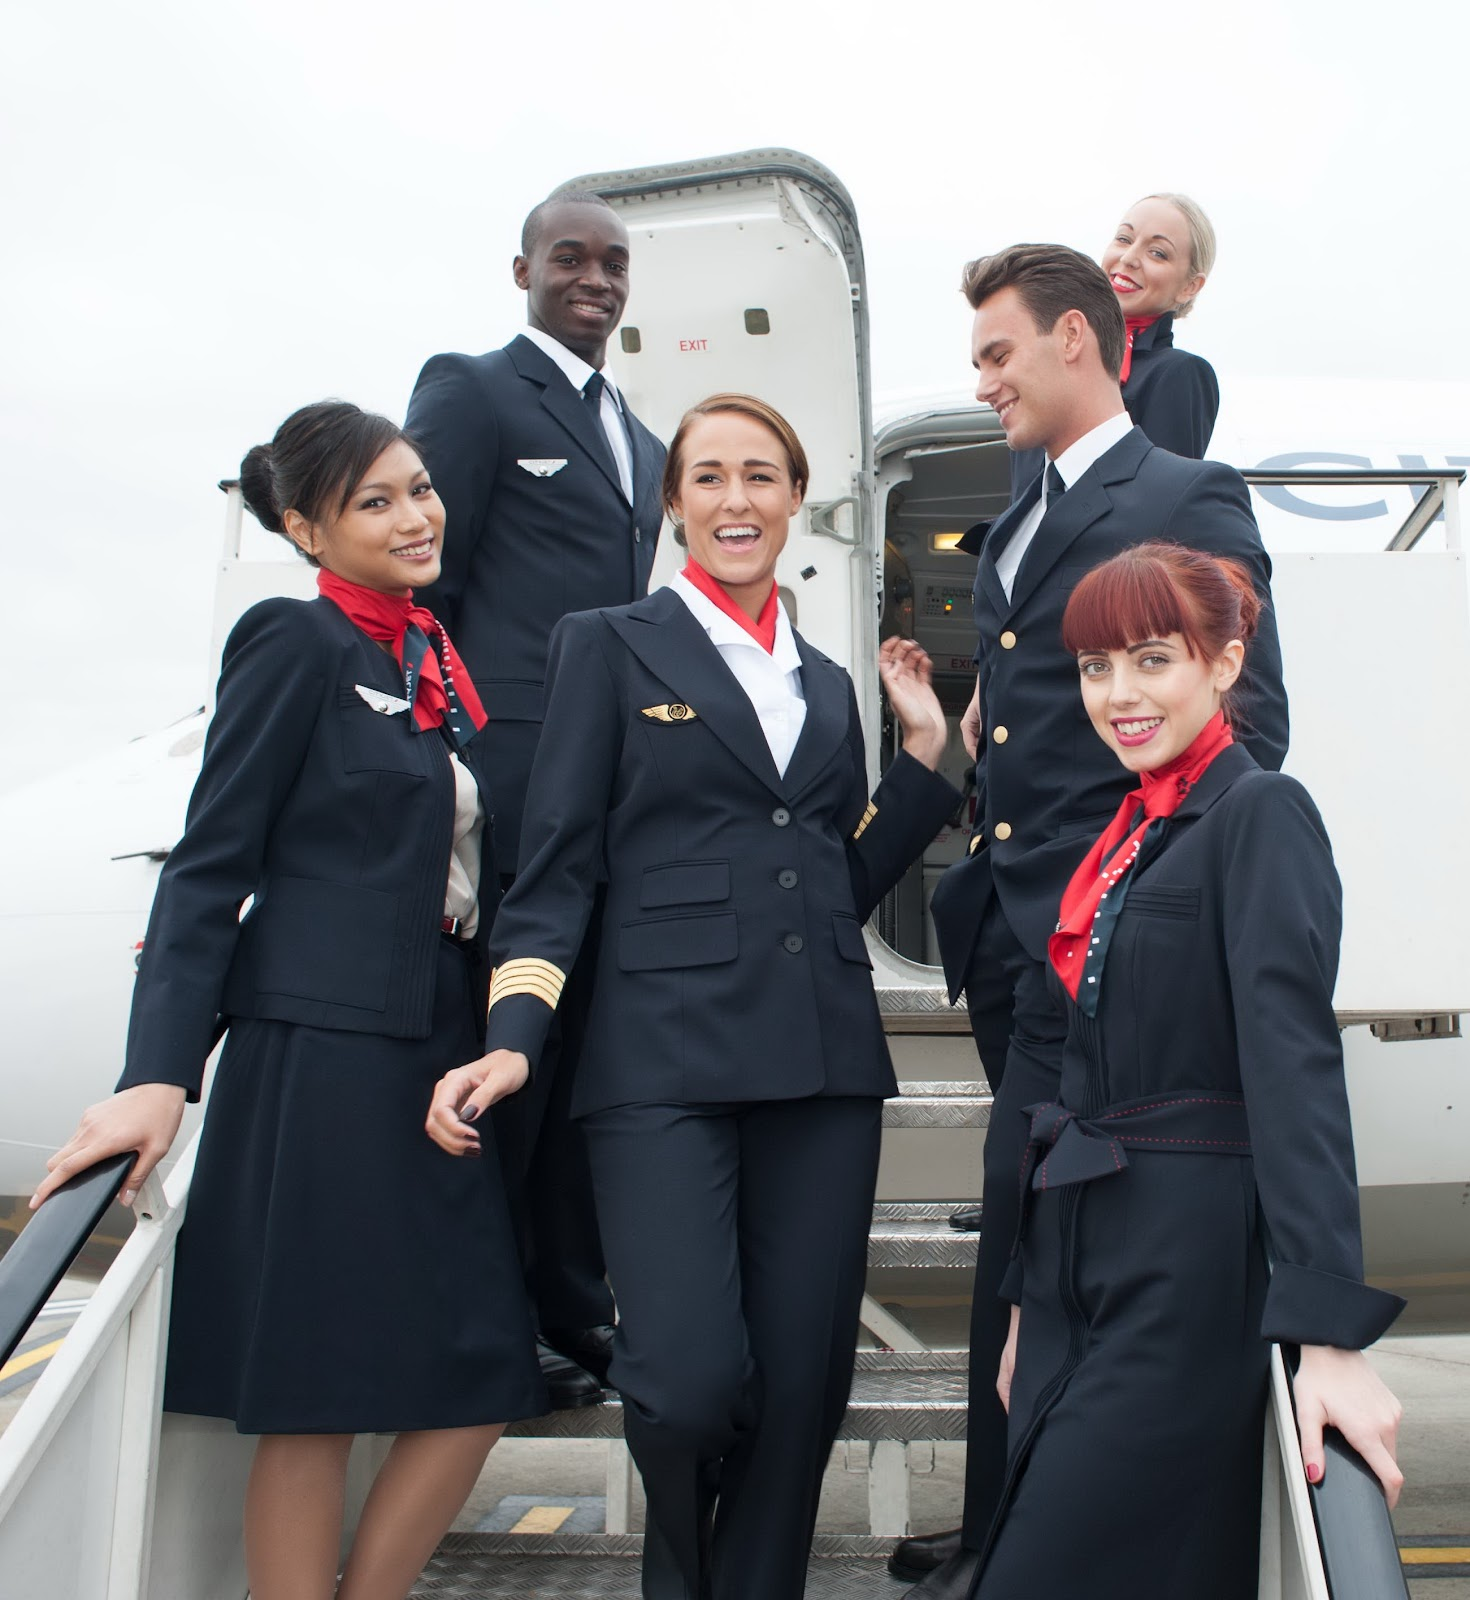 The Airline Cityjet World Stewardess Crews